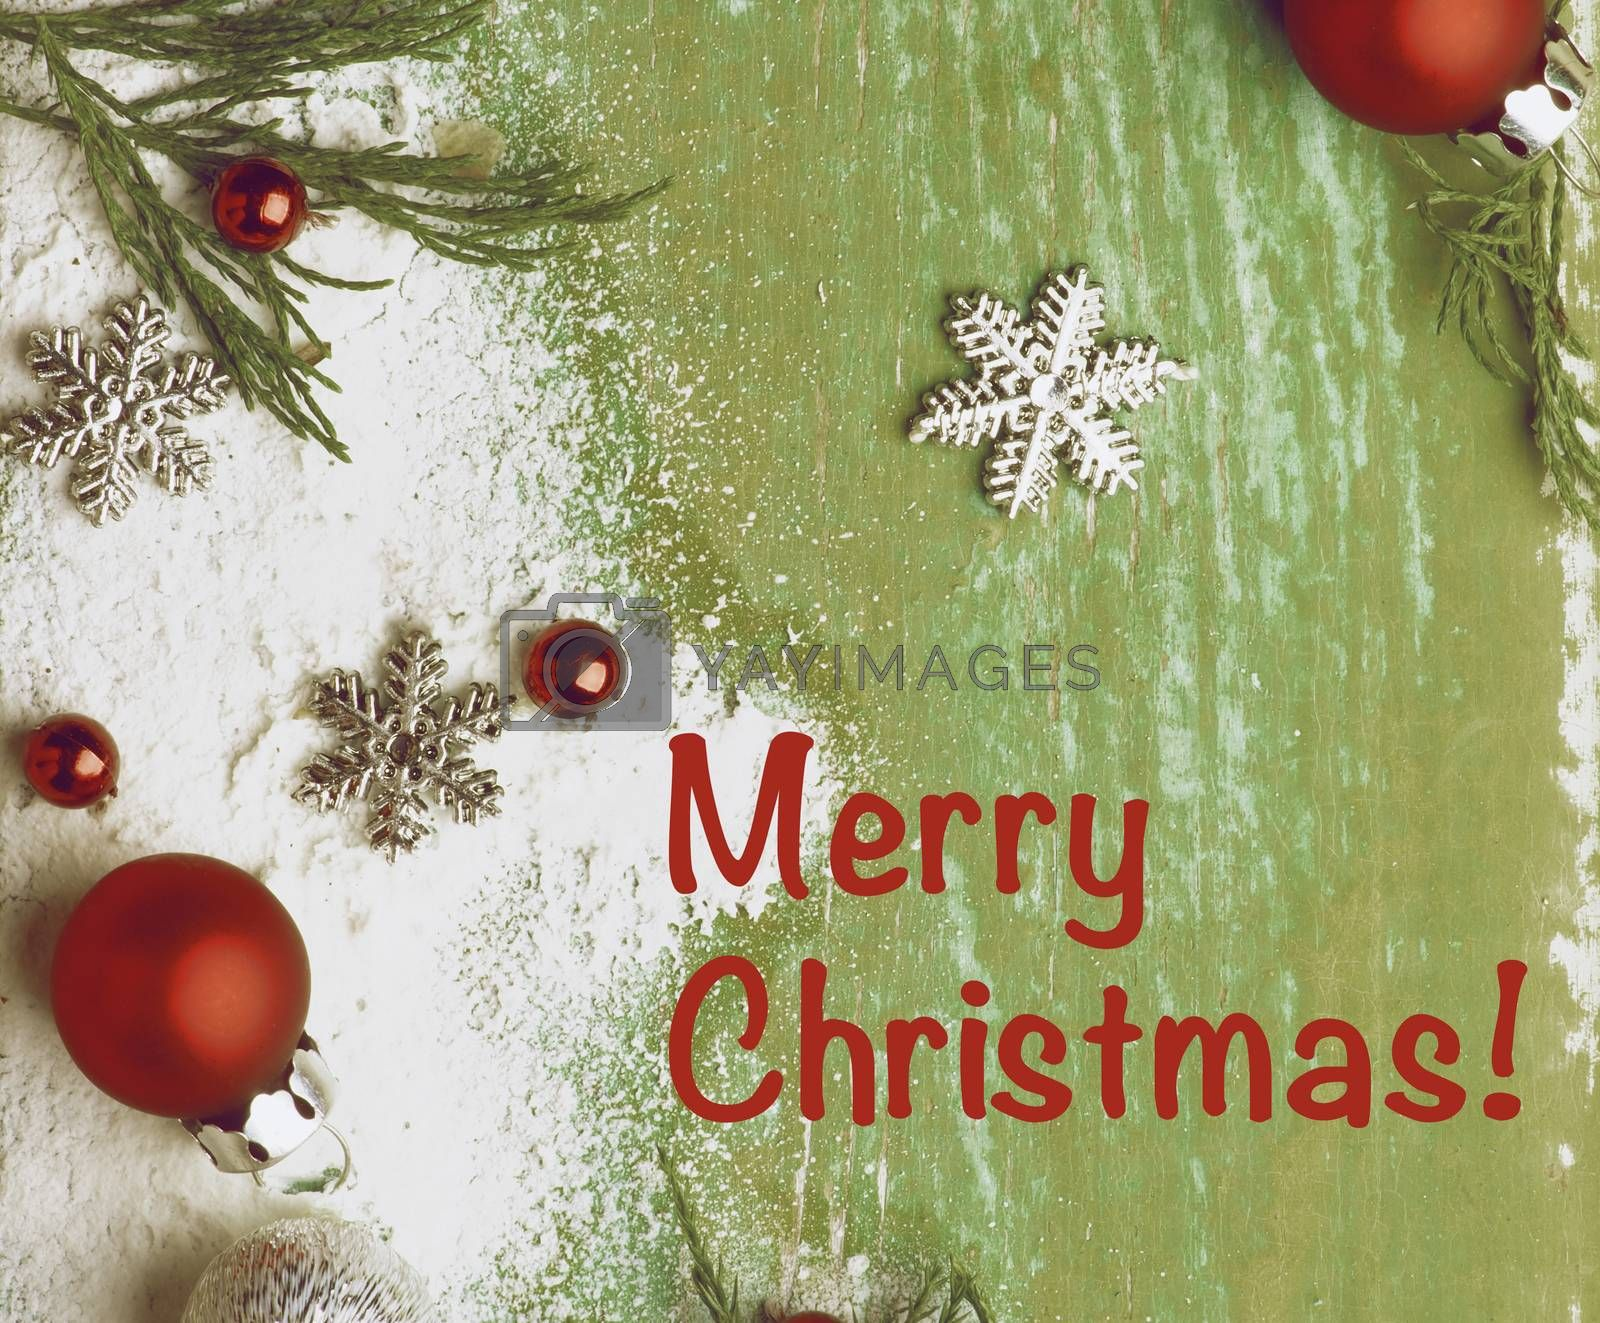 Christmas Greeting Card with Border of Green Branches, Snow Flakes and Decorations with Inscriptions closeup on Cracked Wooden background